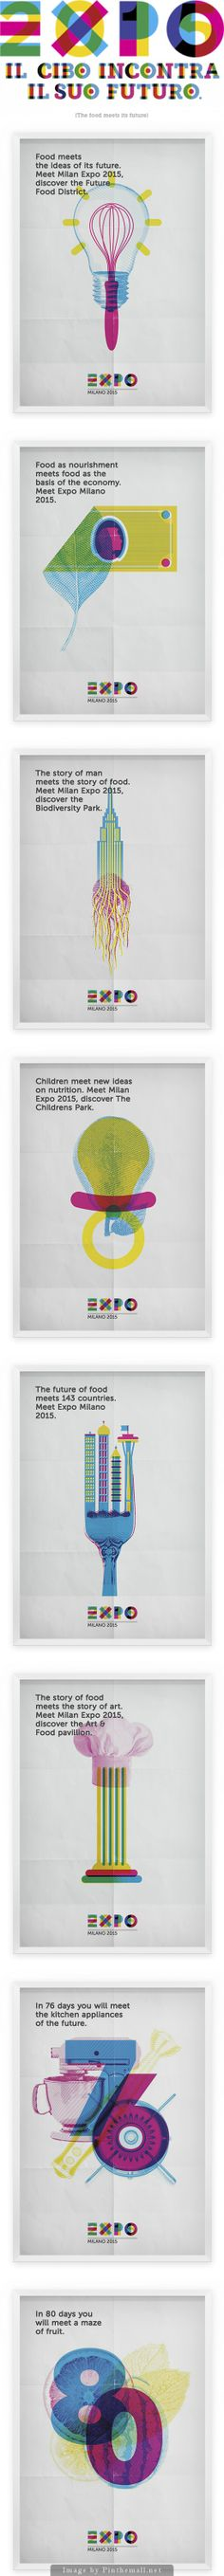 Expo Milano 2015 by Luca Frank Guarini, via Behance